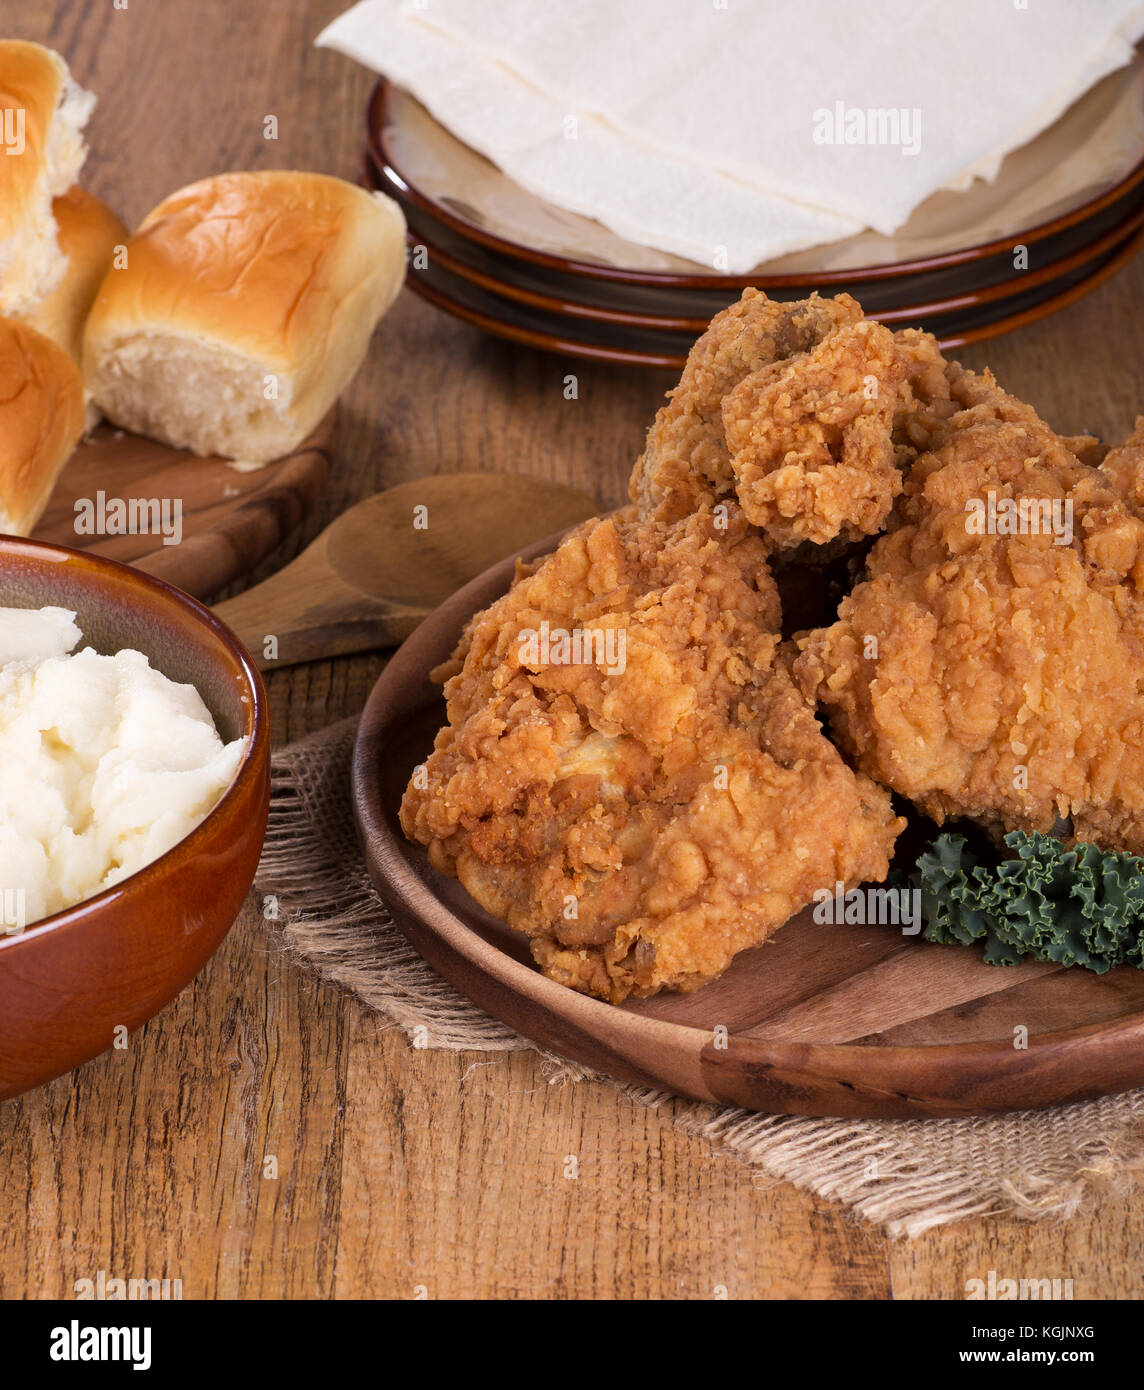 Fried chicken on a platter with mashed potatoes and rolls - Stock Image